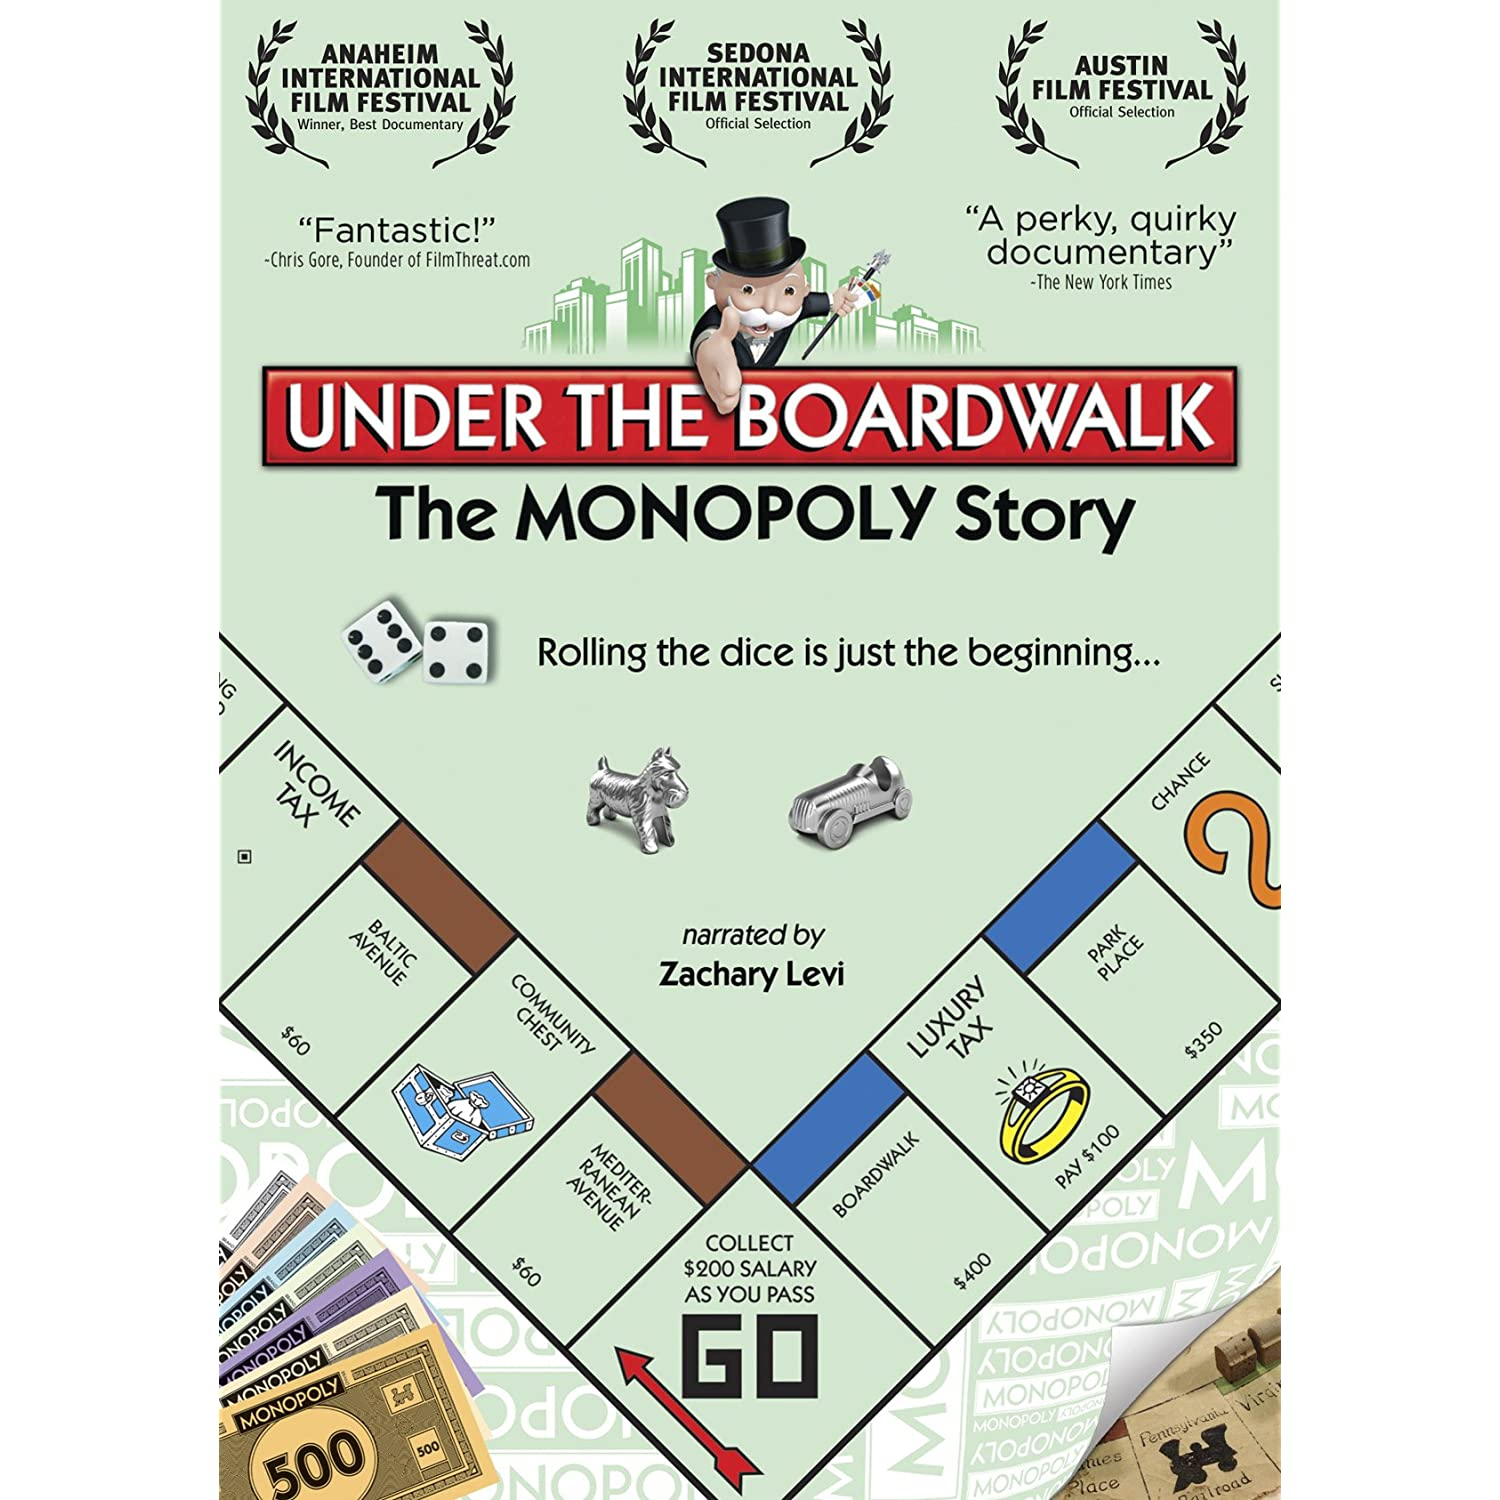 The Monopoly Story